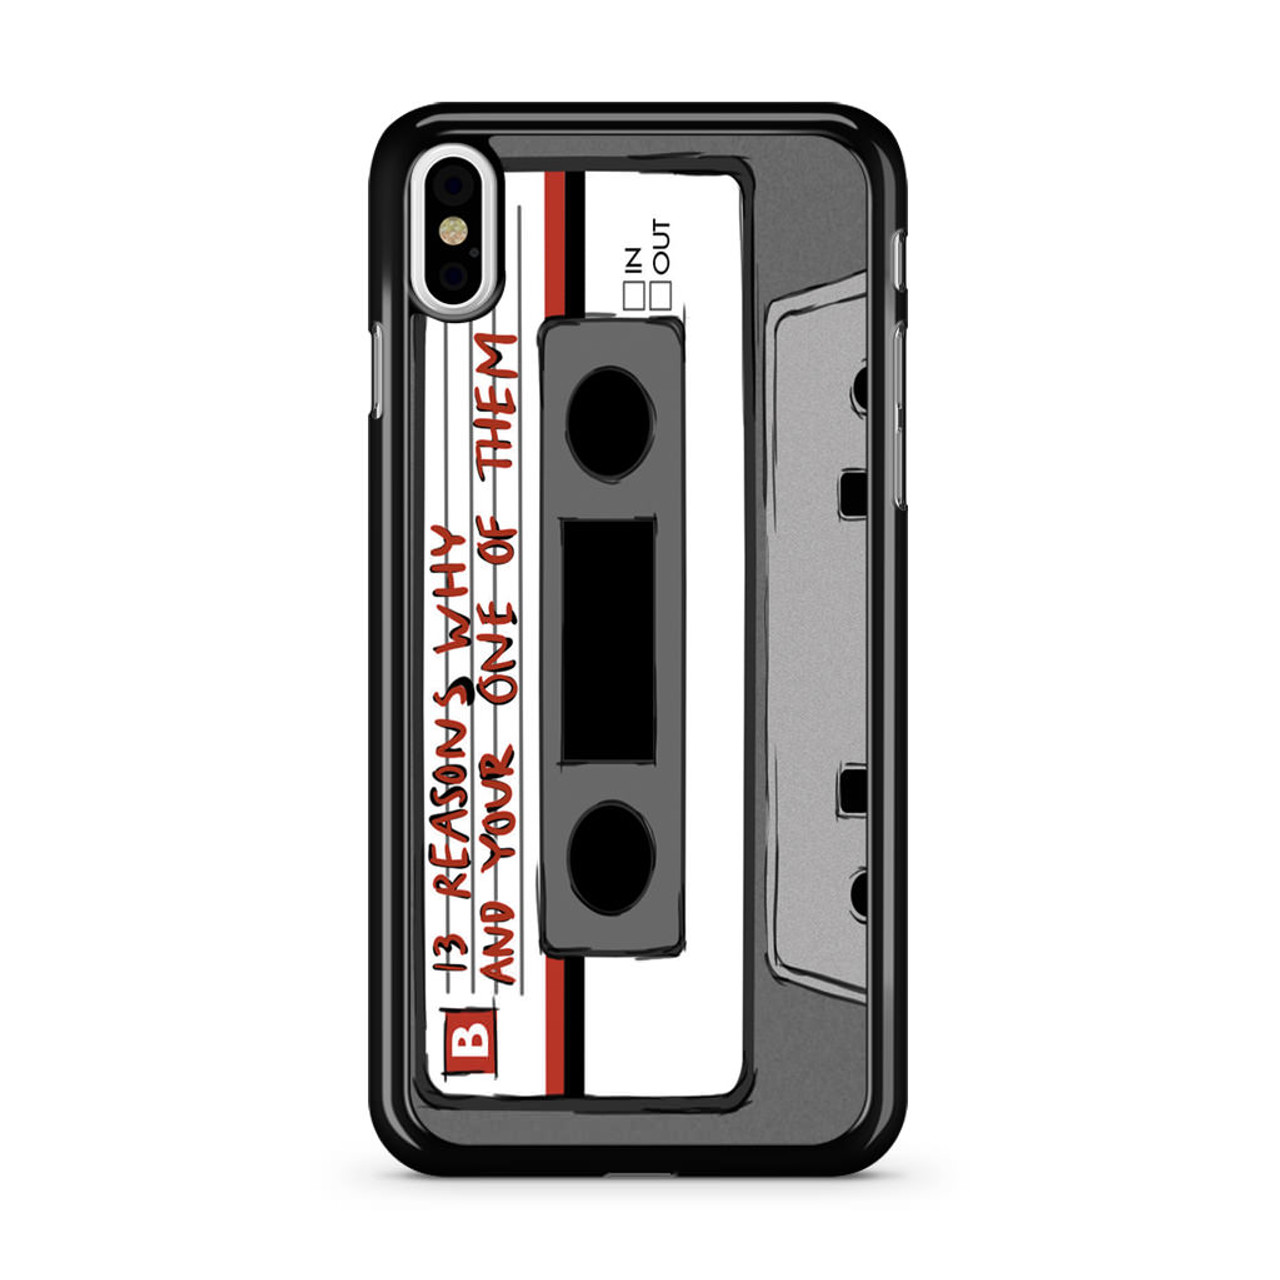 31504a5866a5 13 Reasons Why Casette iPhone X Case - GGIANS